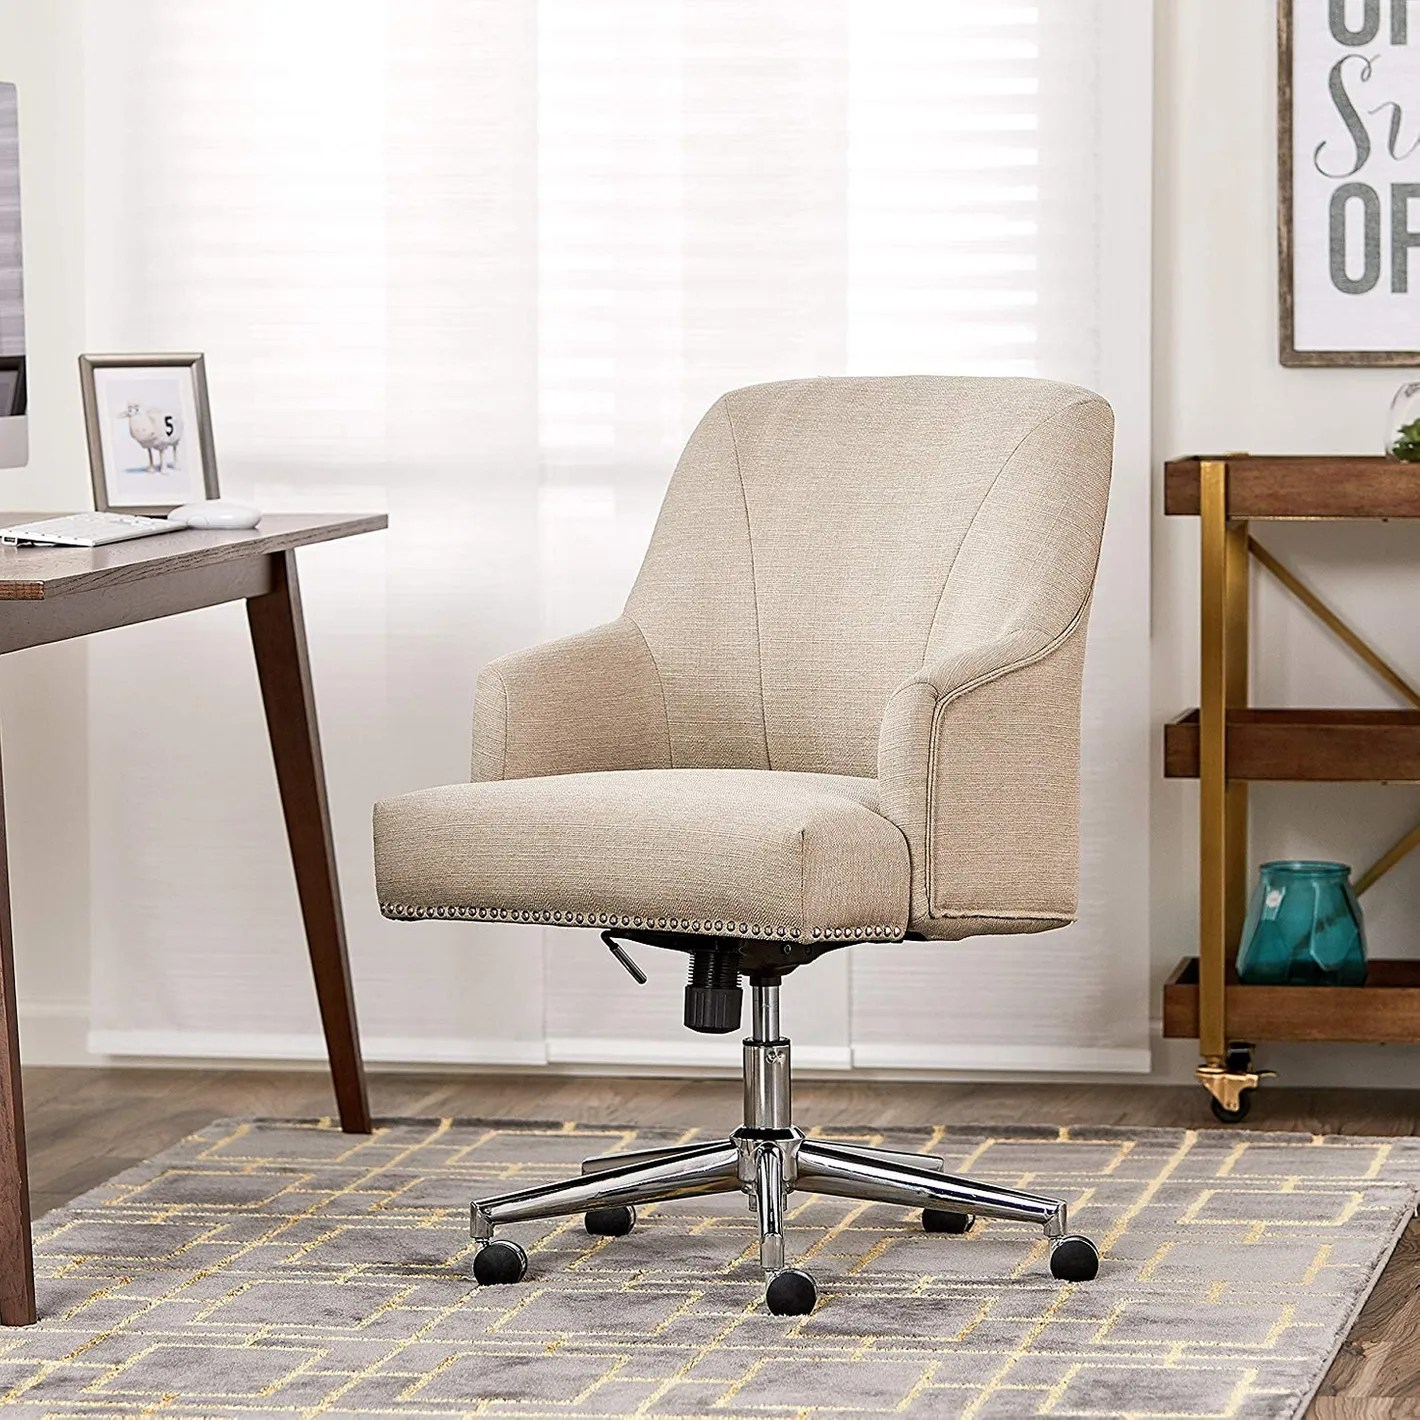 Home Office Desk Chairs 19 Best Office Chairs And Home Office Chairs 2019